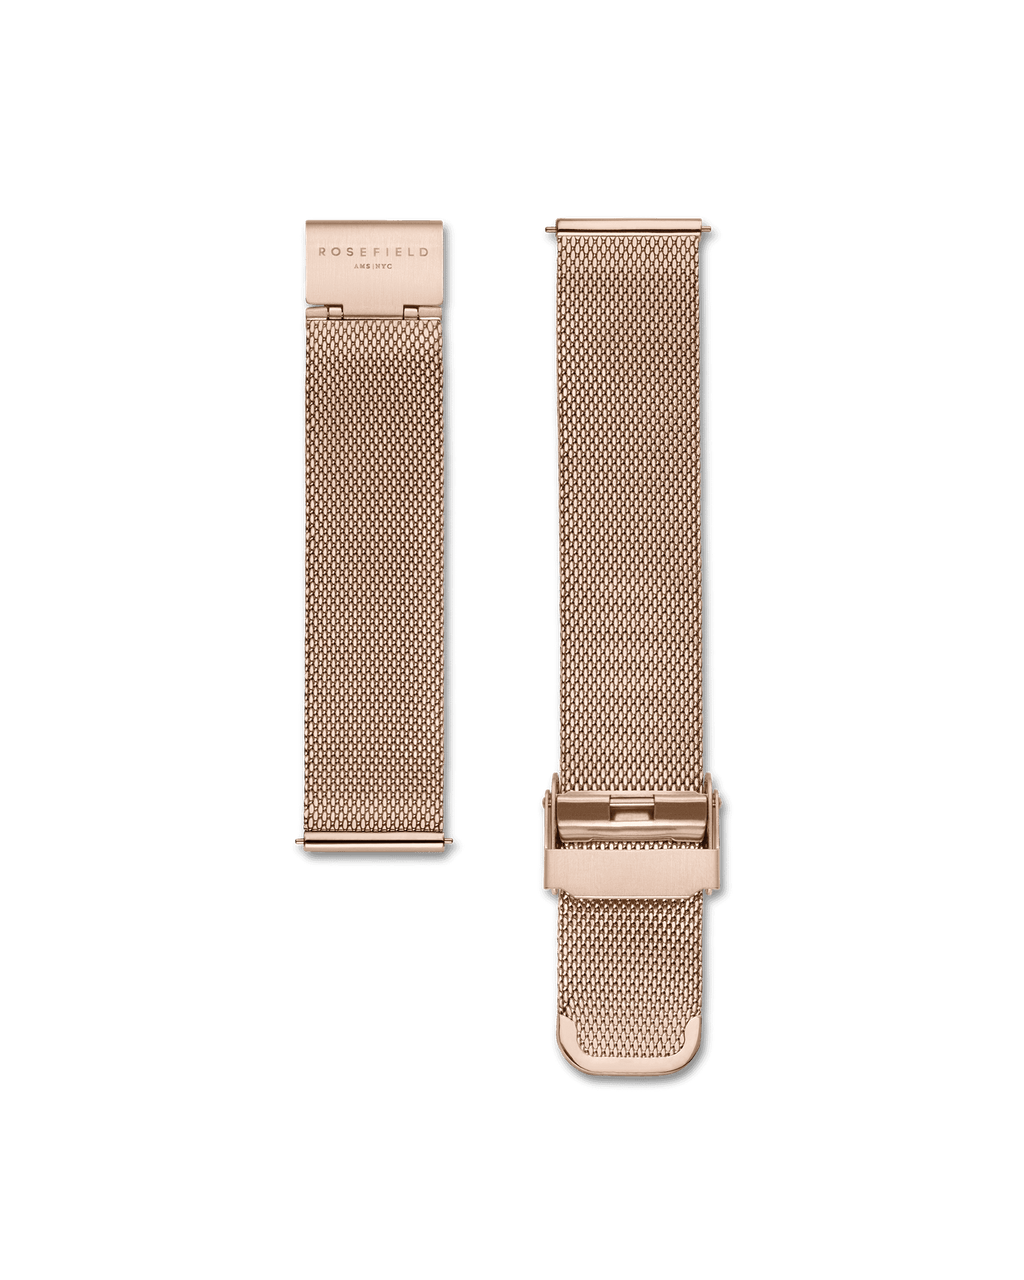 Rosefield Watch Mercer - Black / Rosefield Mesh Womens watch / Ultra-thin 8mm rose gold-plated case. Diameter: 38mm / Rose gold-plated stainless steel mesh strap. The strap can be easily​ ​adjusted to a minimum length (perimeter) of 15 cm and a maximum of 21 cm / Black dial detailed with rosegold hands and indexes / Durable Japanese Quartz movement / 3 ATM water-resistant